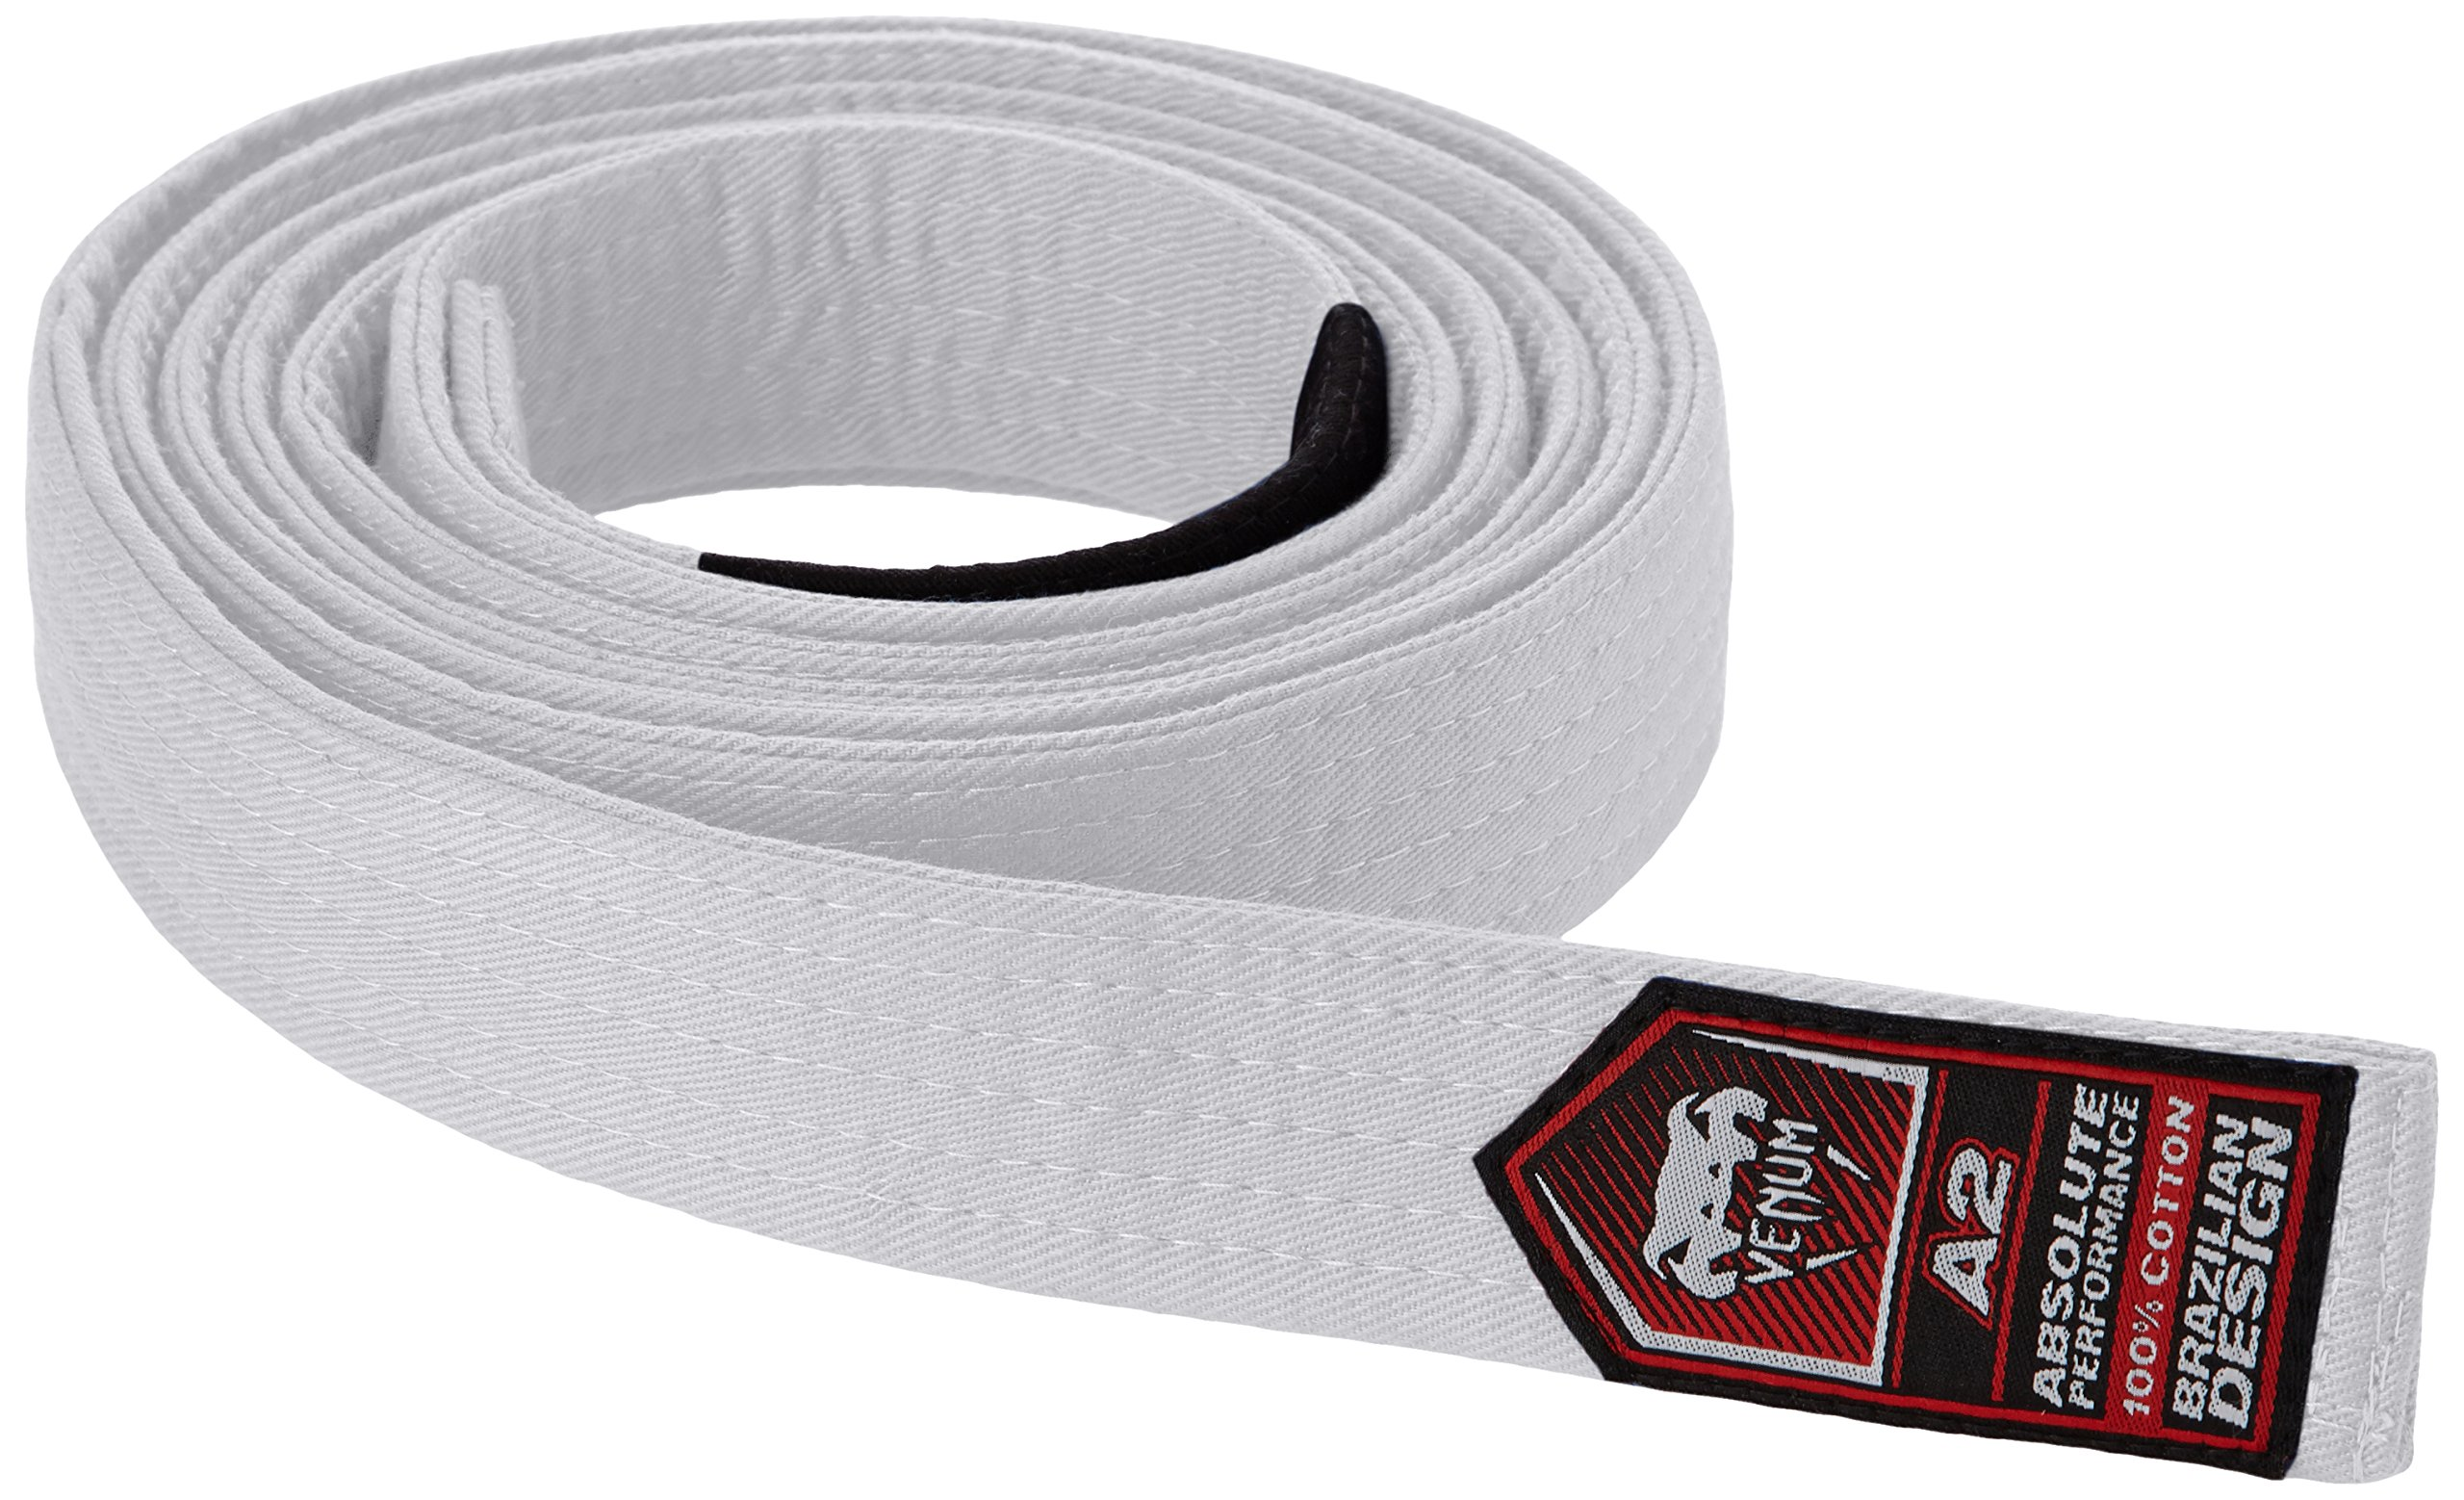 Venum BJJ Belt, White, A1 by Venum